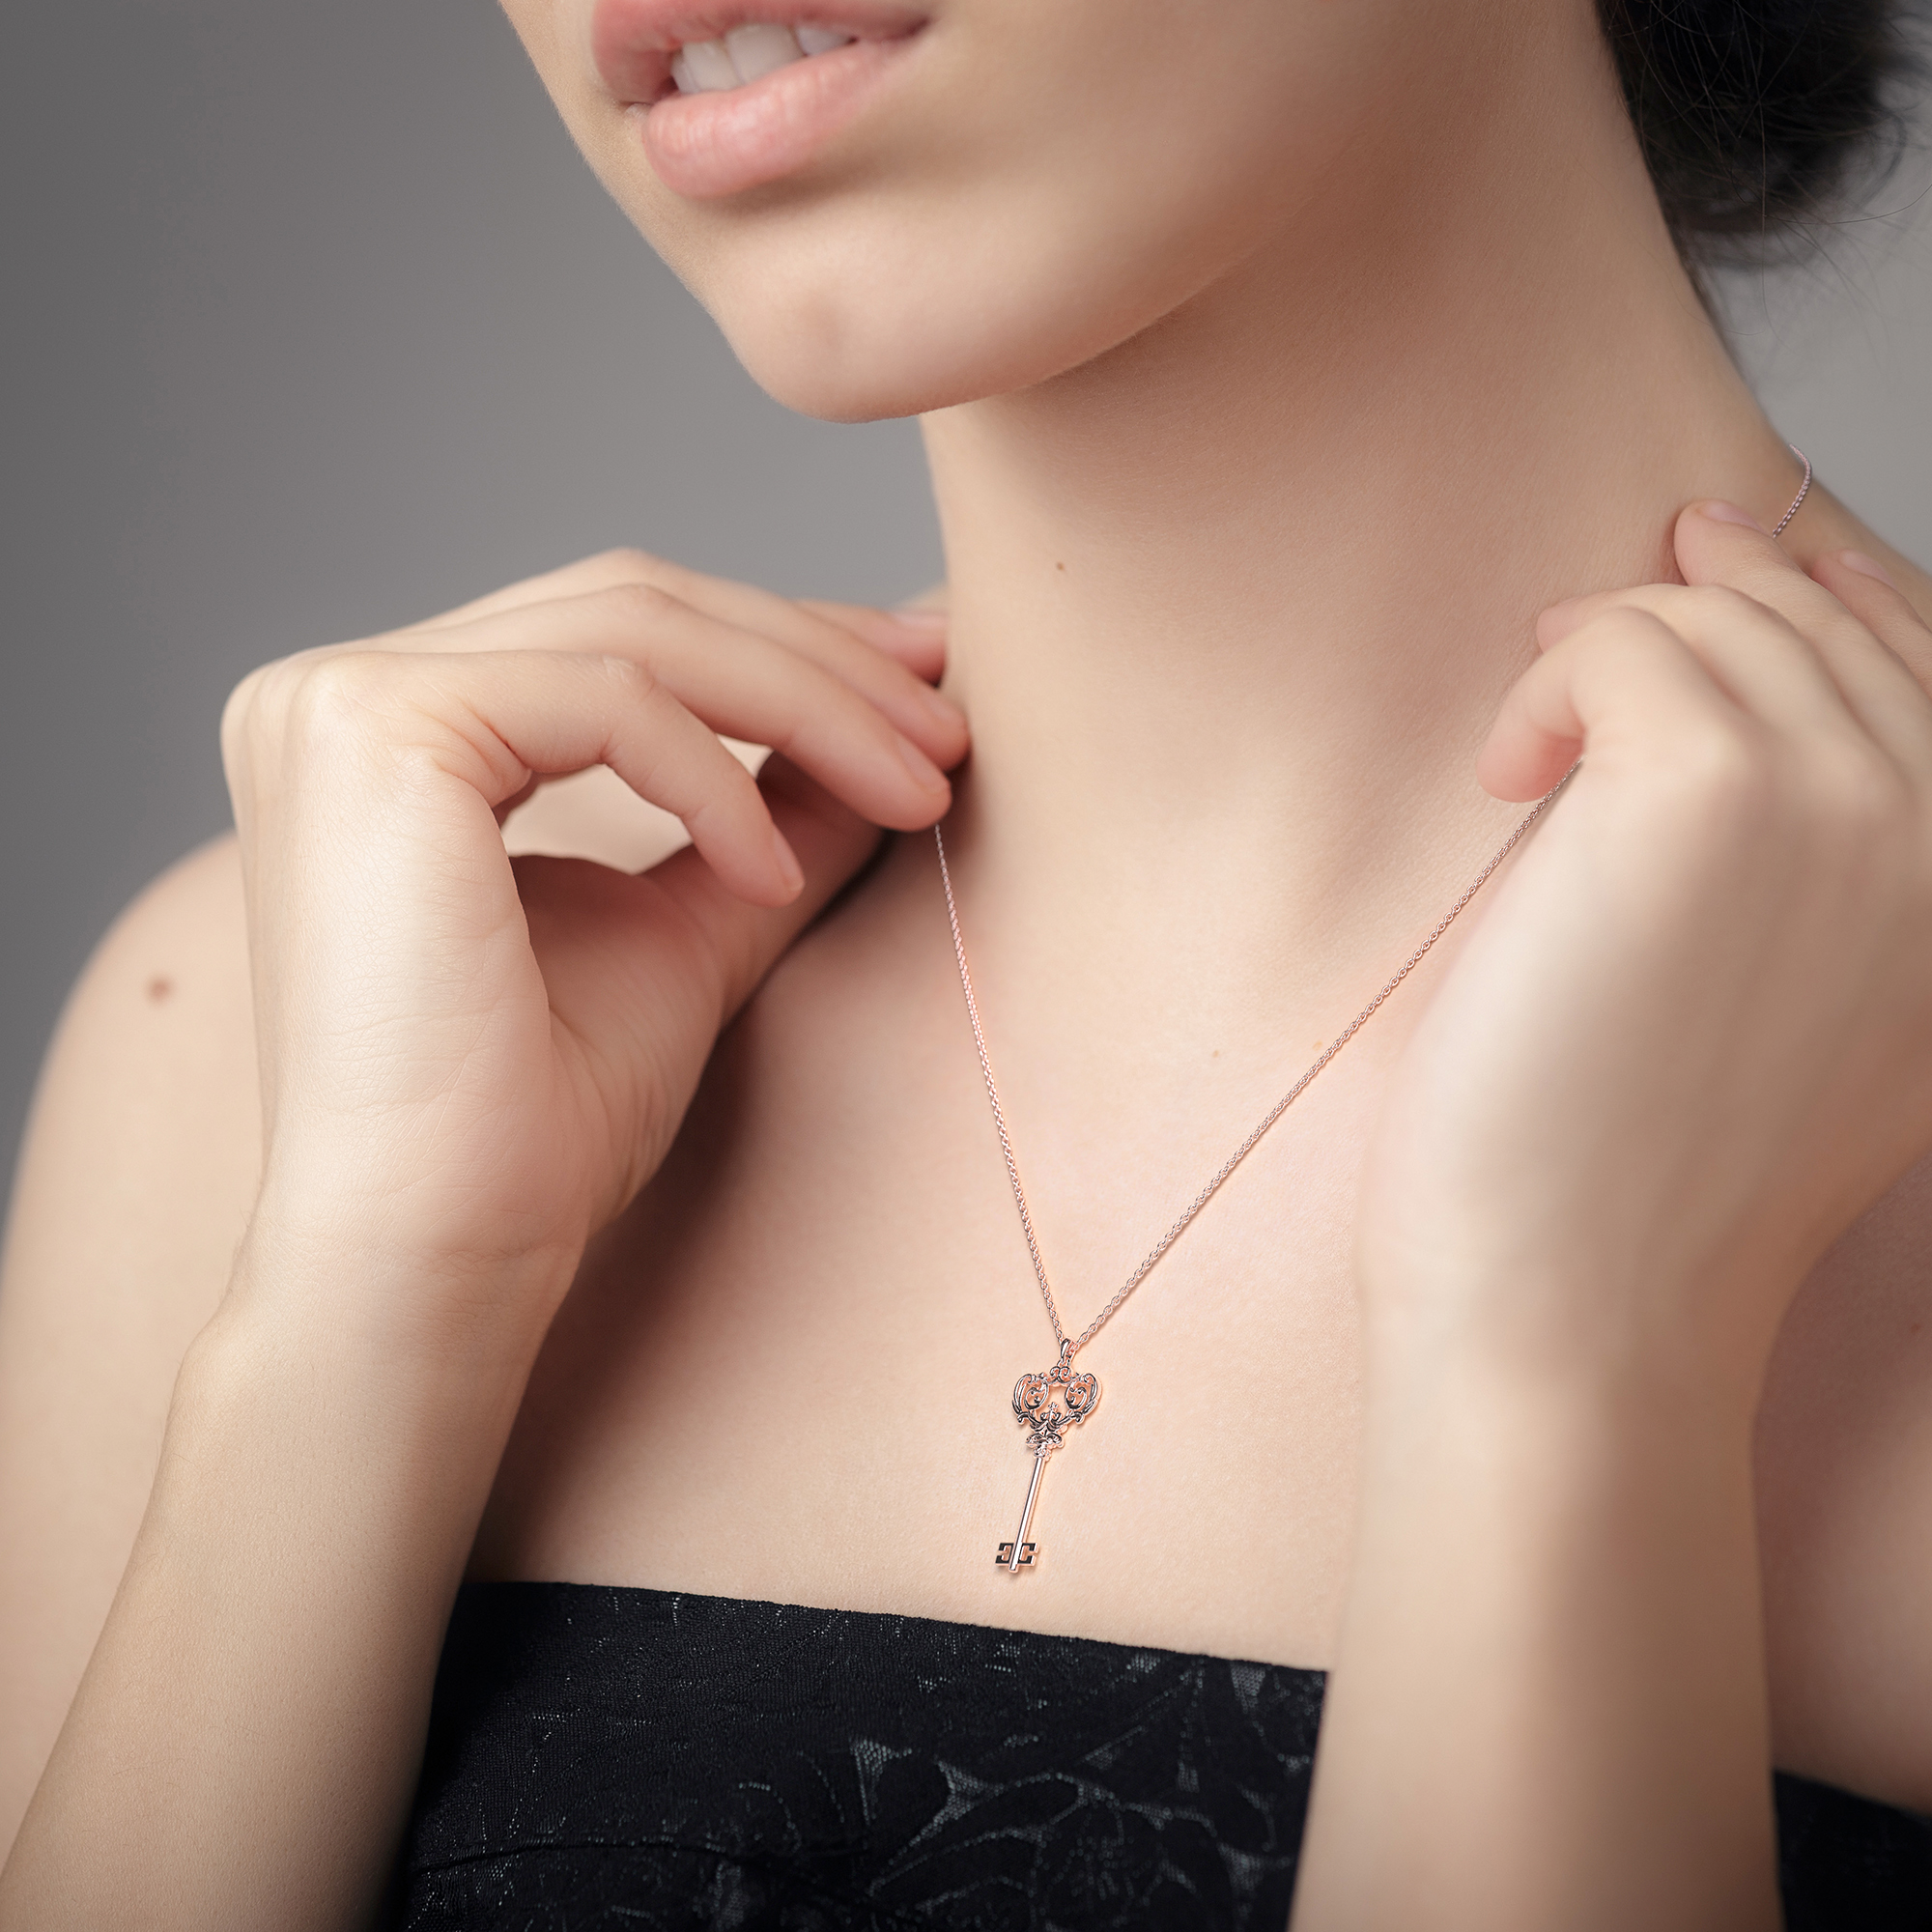 Impressive Key Pendant Art Deco Inspired Necklace Fine Jewelry Rose Gold by Camellia Jewelry